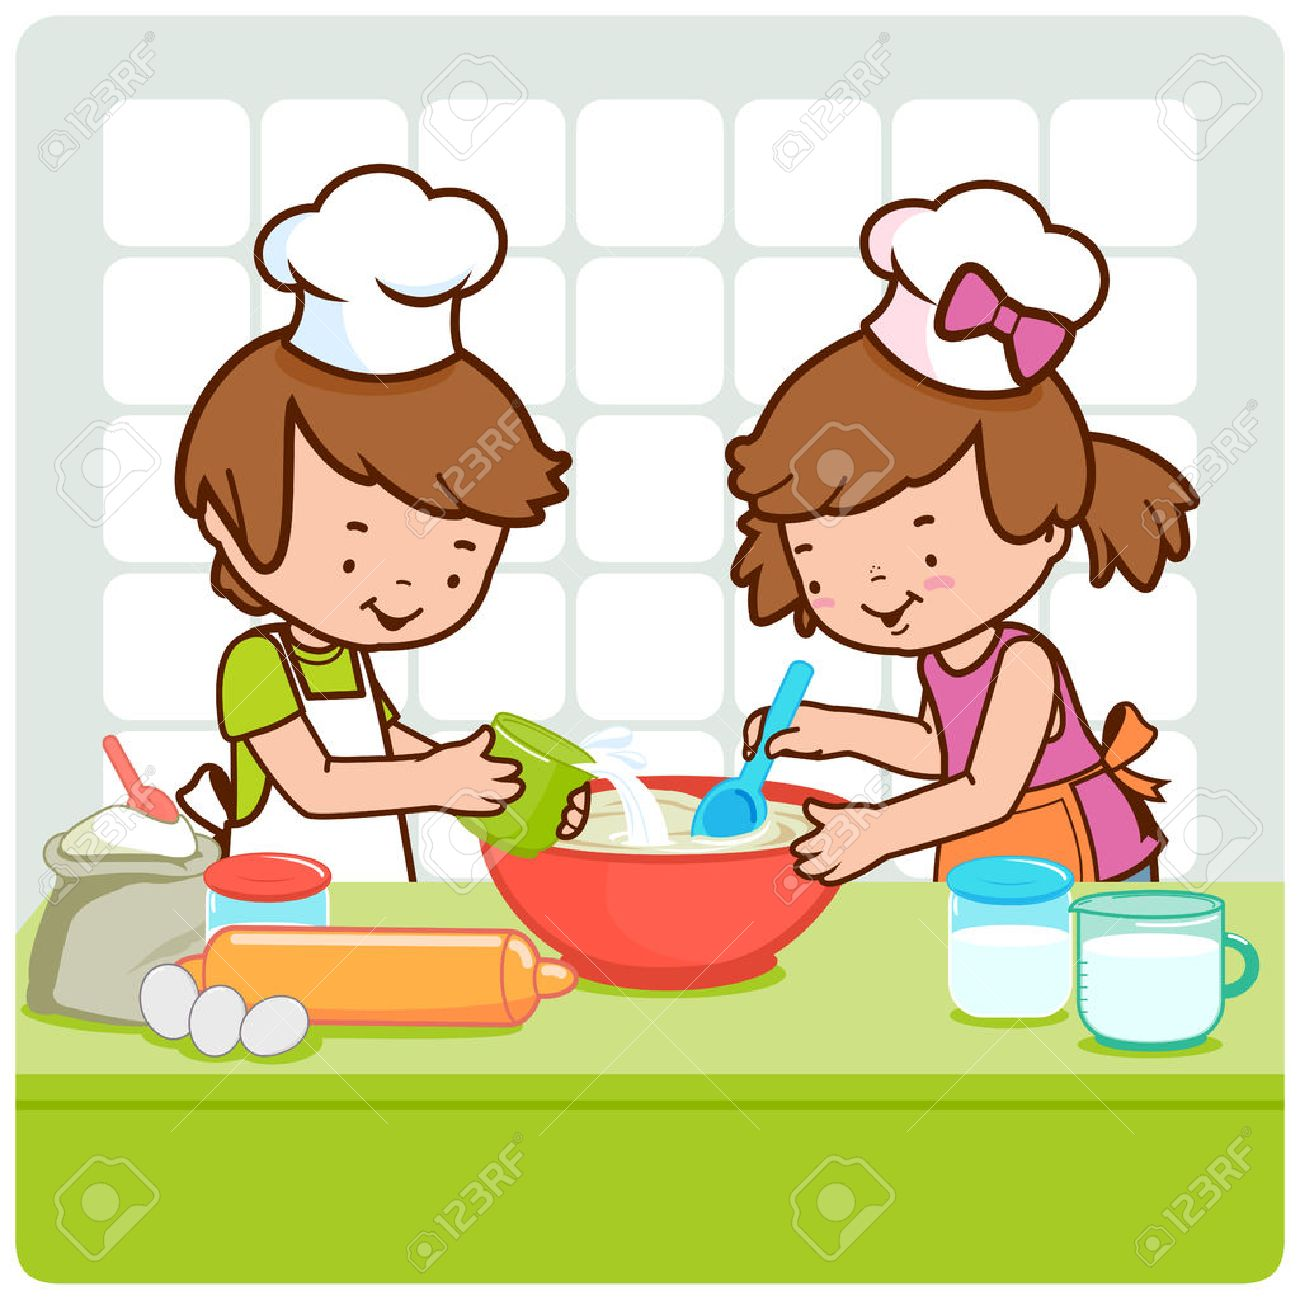 children cooking in the kitchen royalty free cliparts vectors and rh 123rf com Cooking Utensils Clip Art Cooking Clip Art Borders